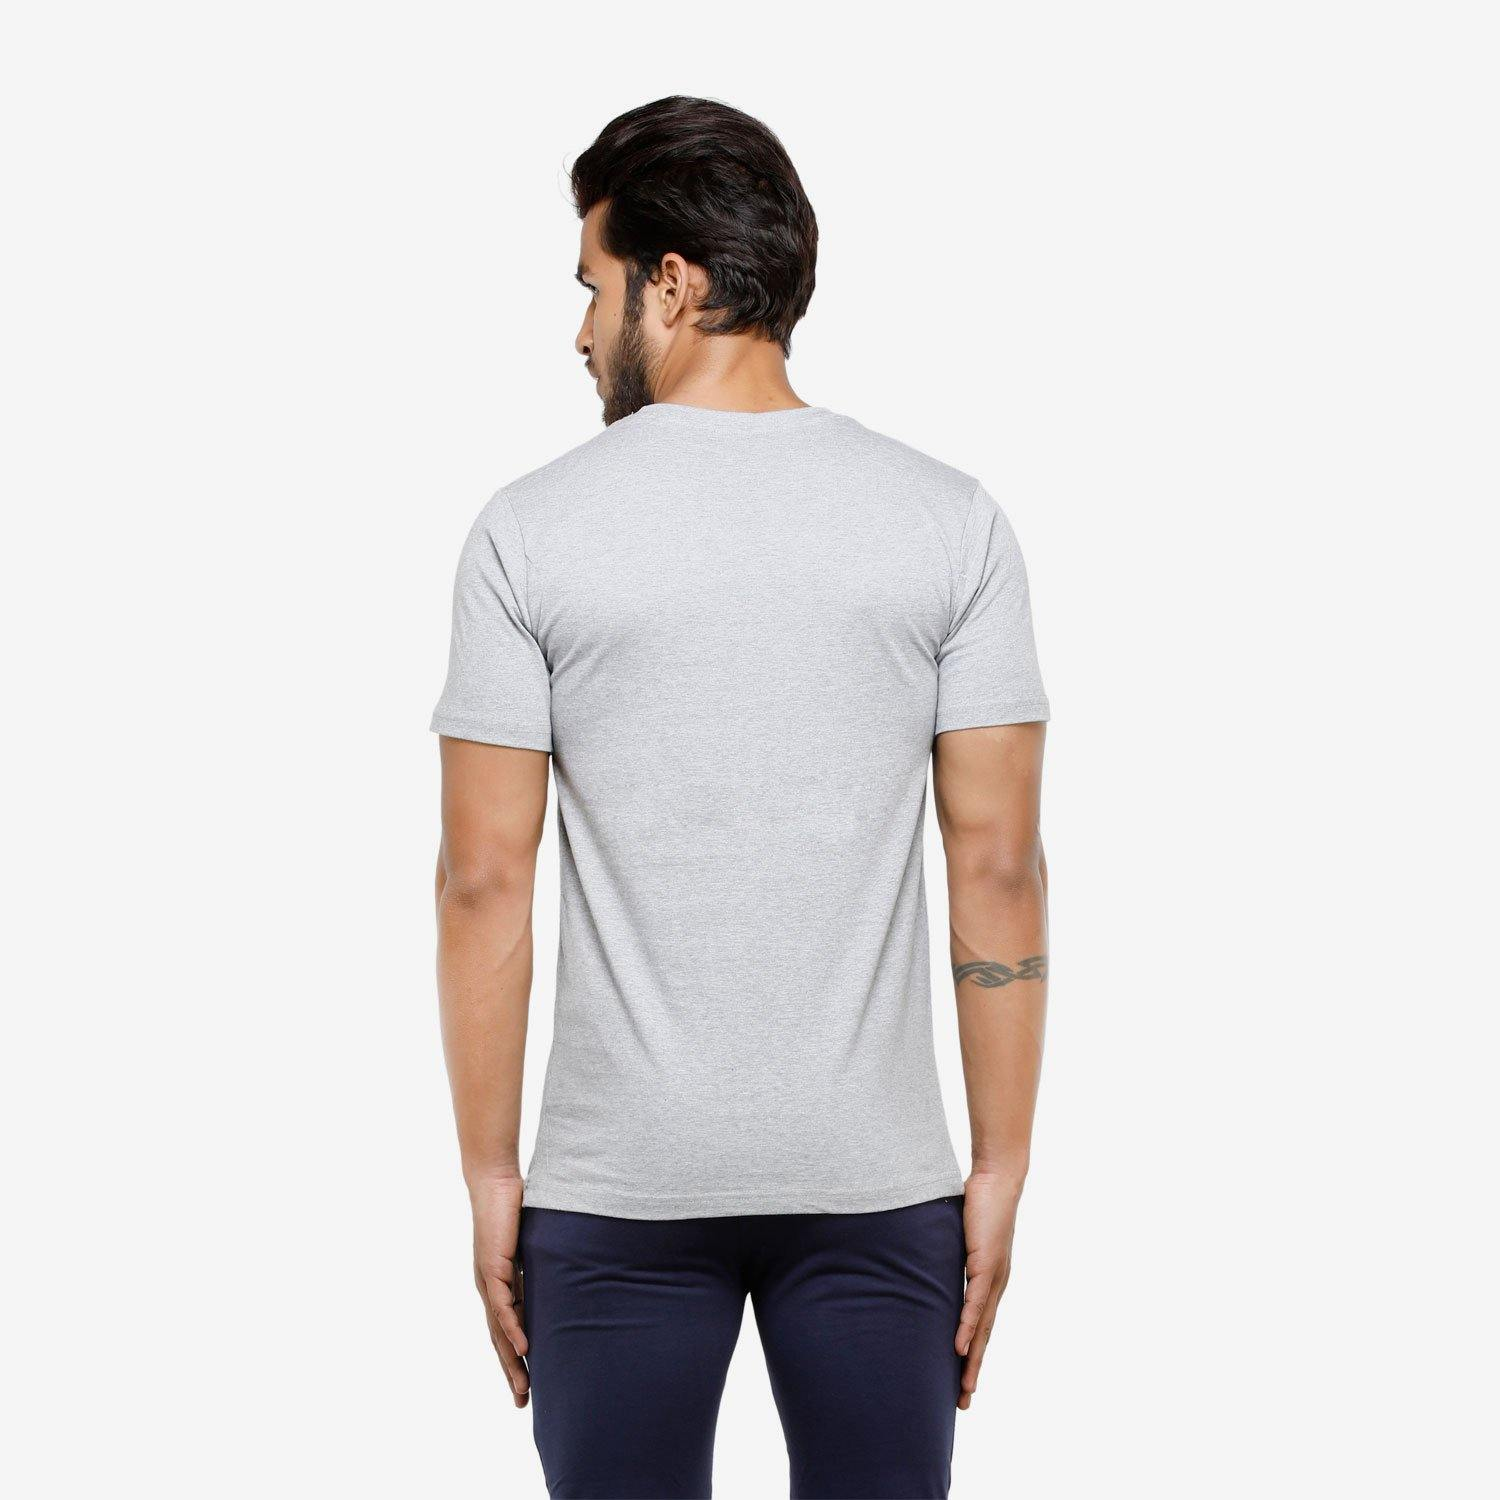 Summer Casual T-Shirt